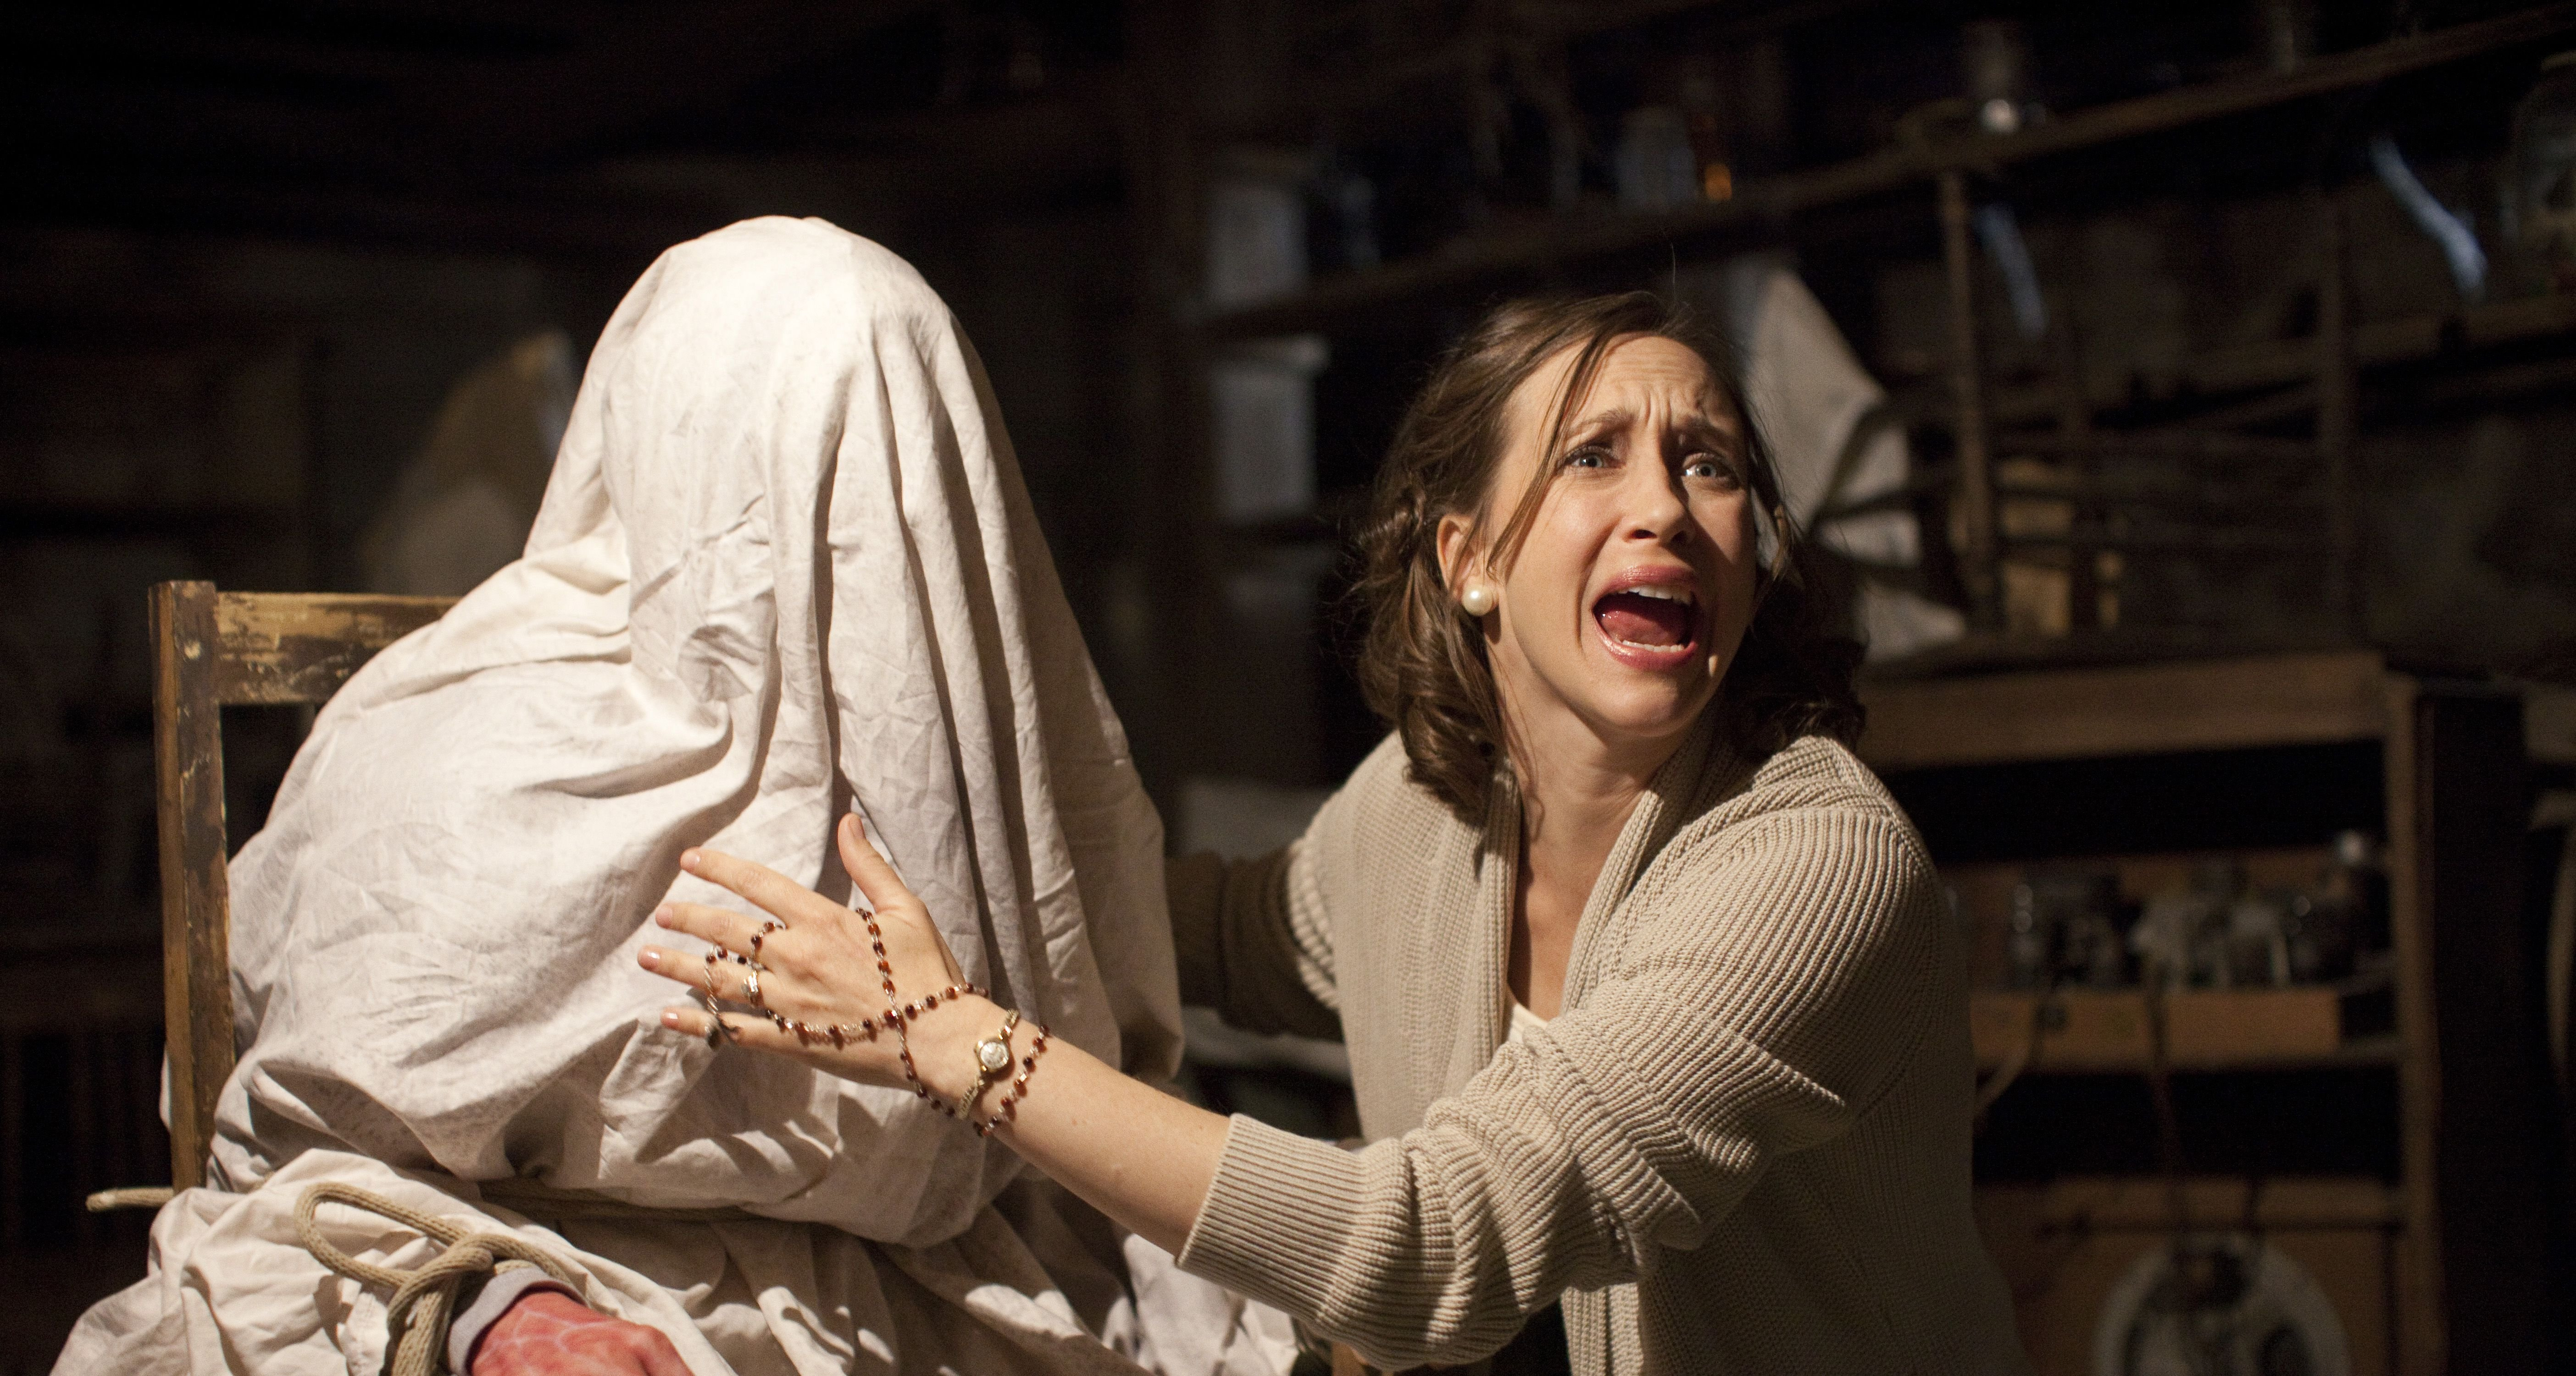 An image from The Conjuring